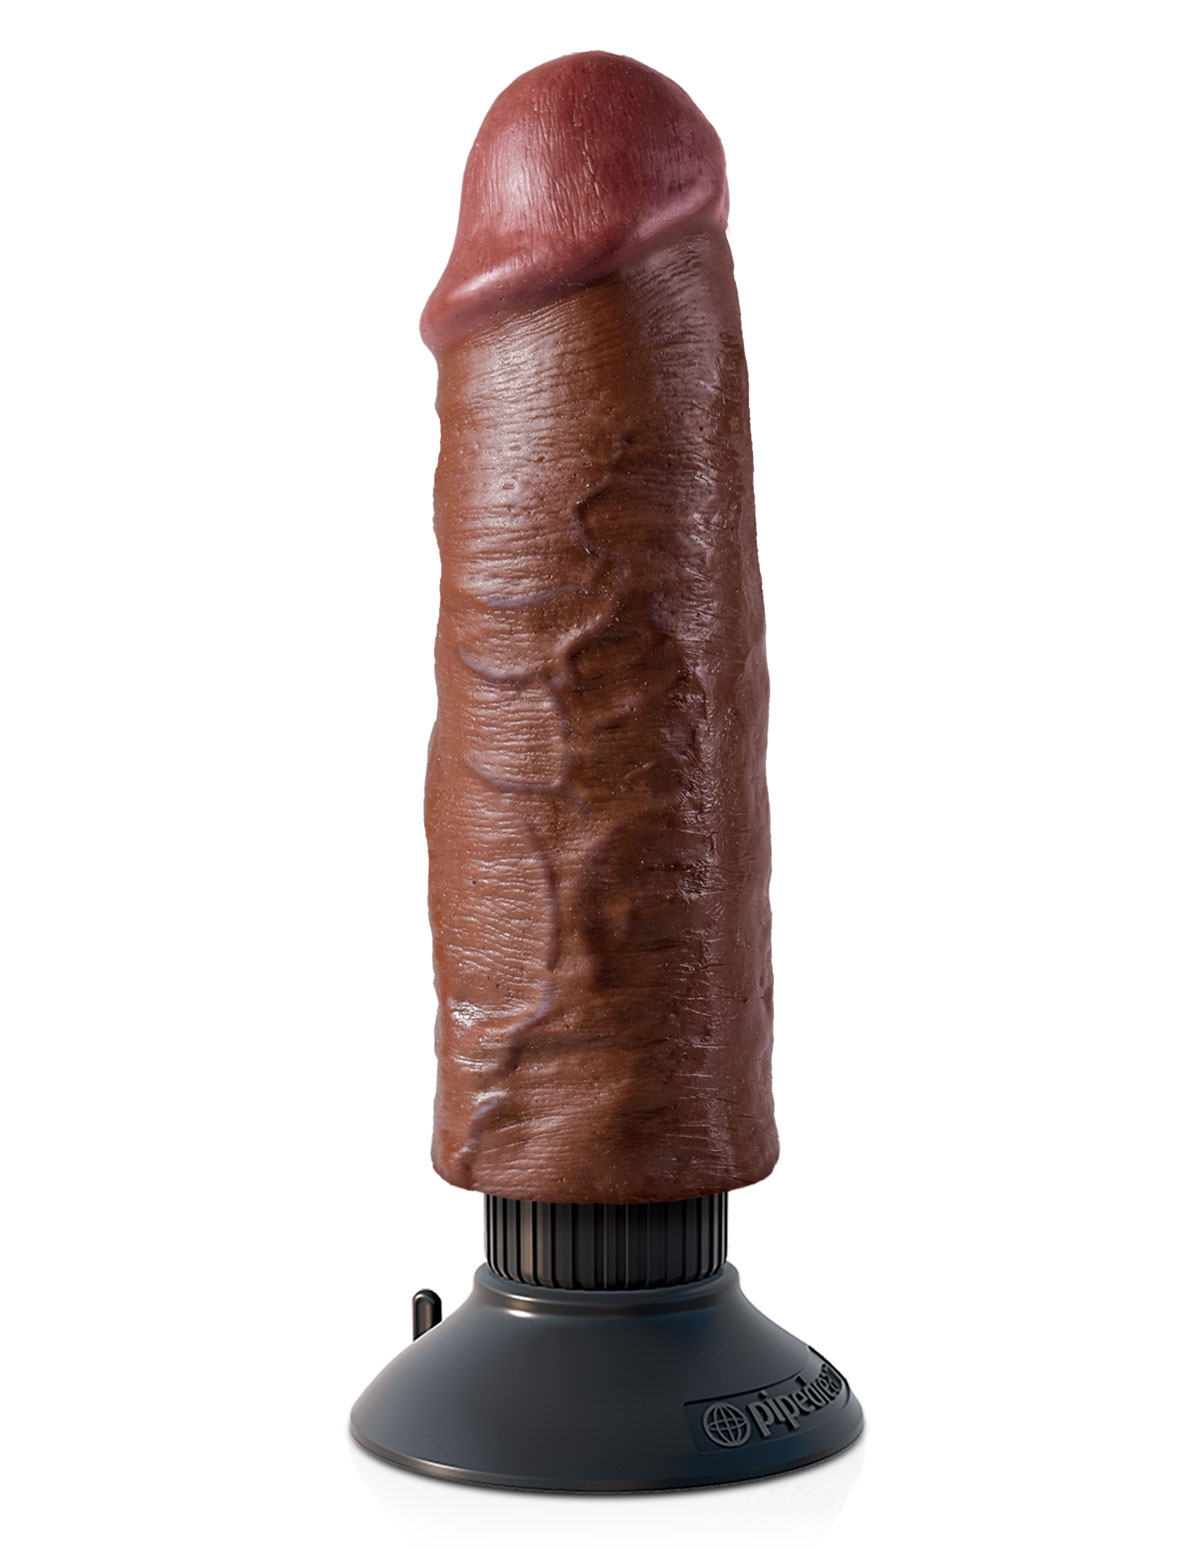 King Cock 6-Inch Vibrating Cock - Brown